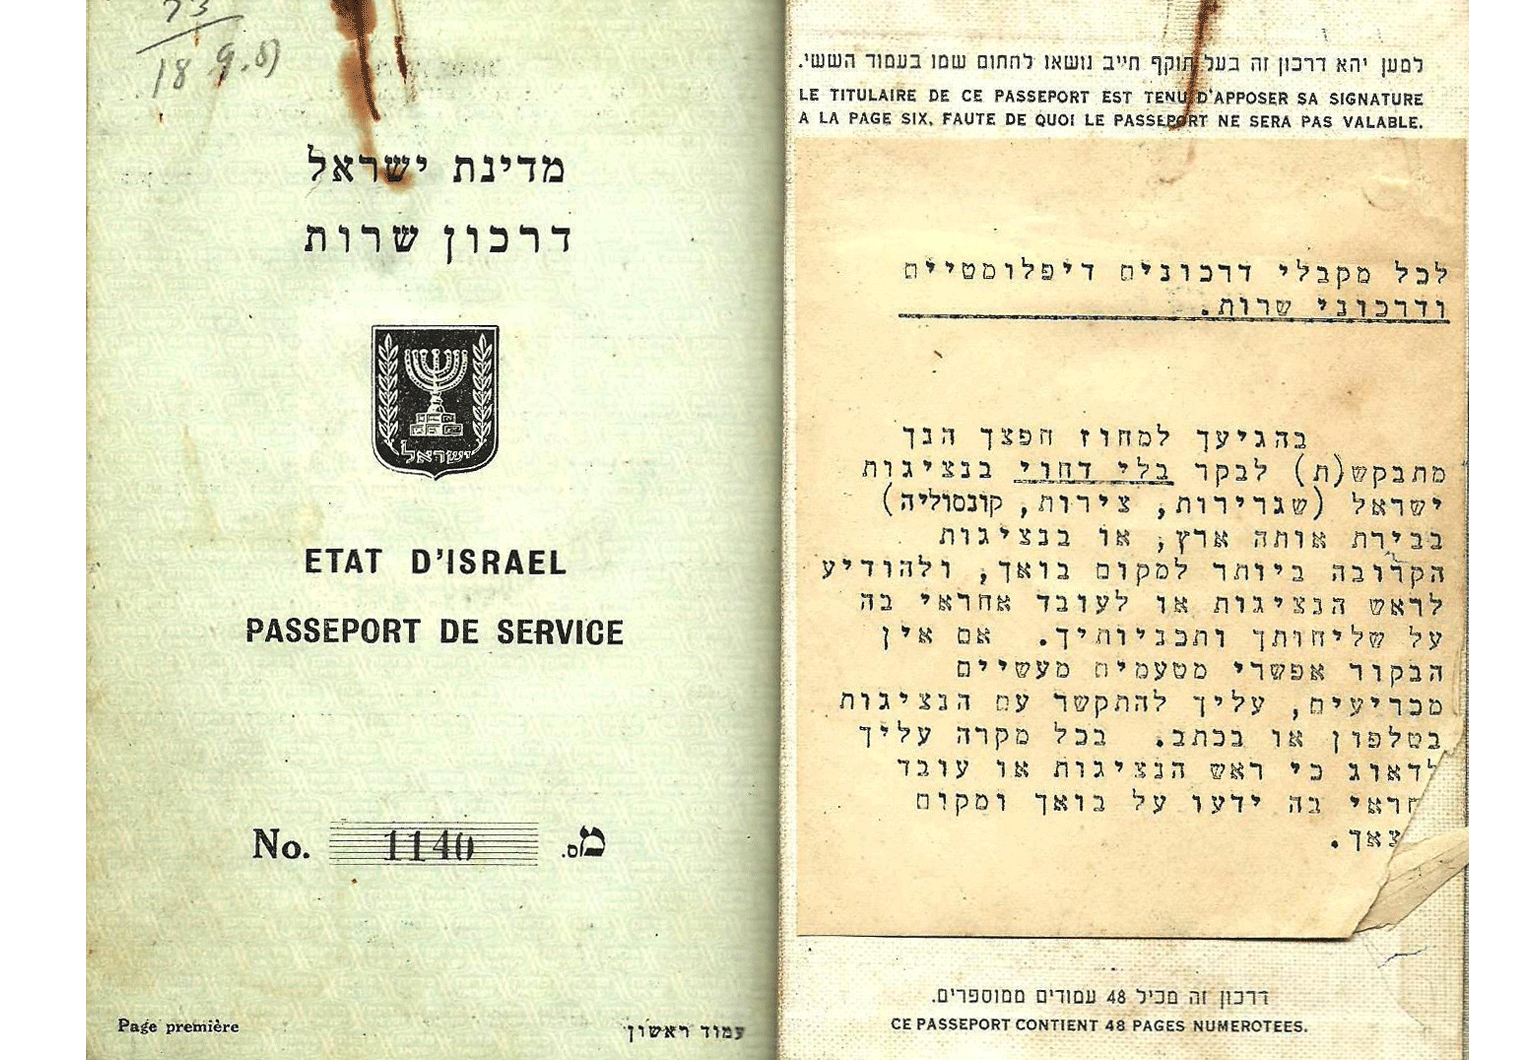 Israeli service passport from 1951